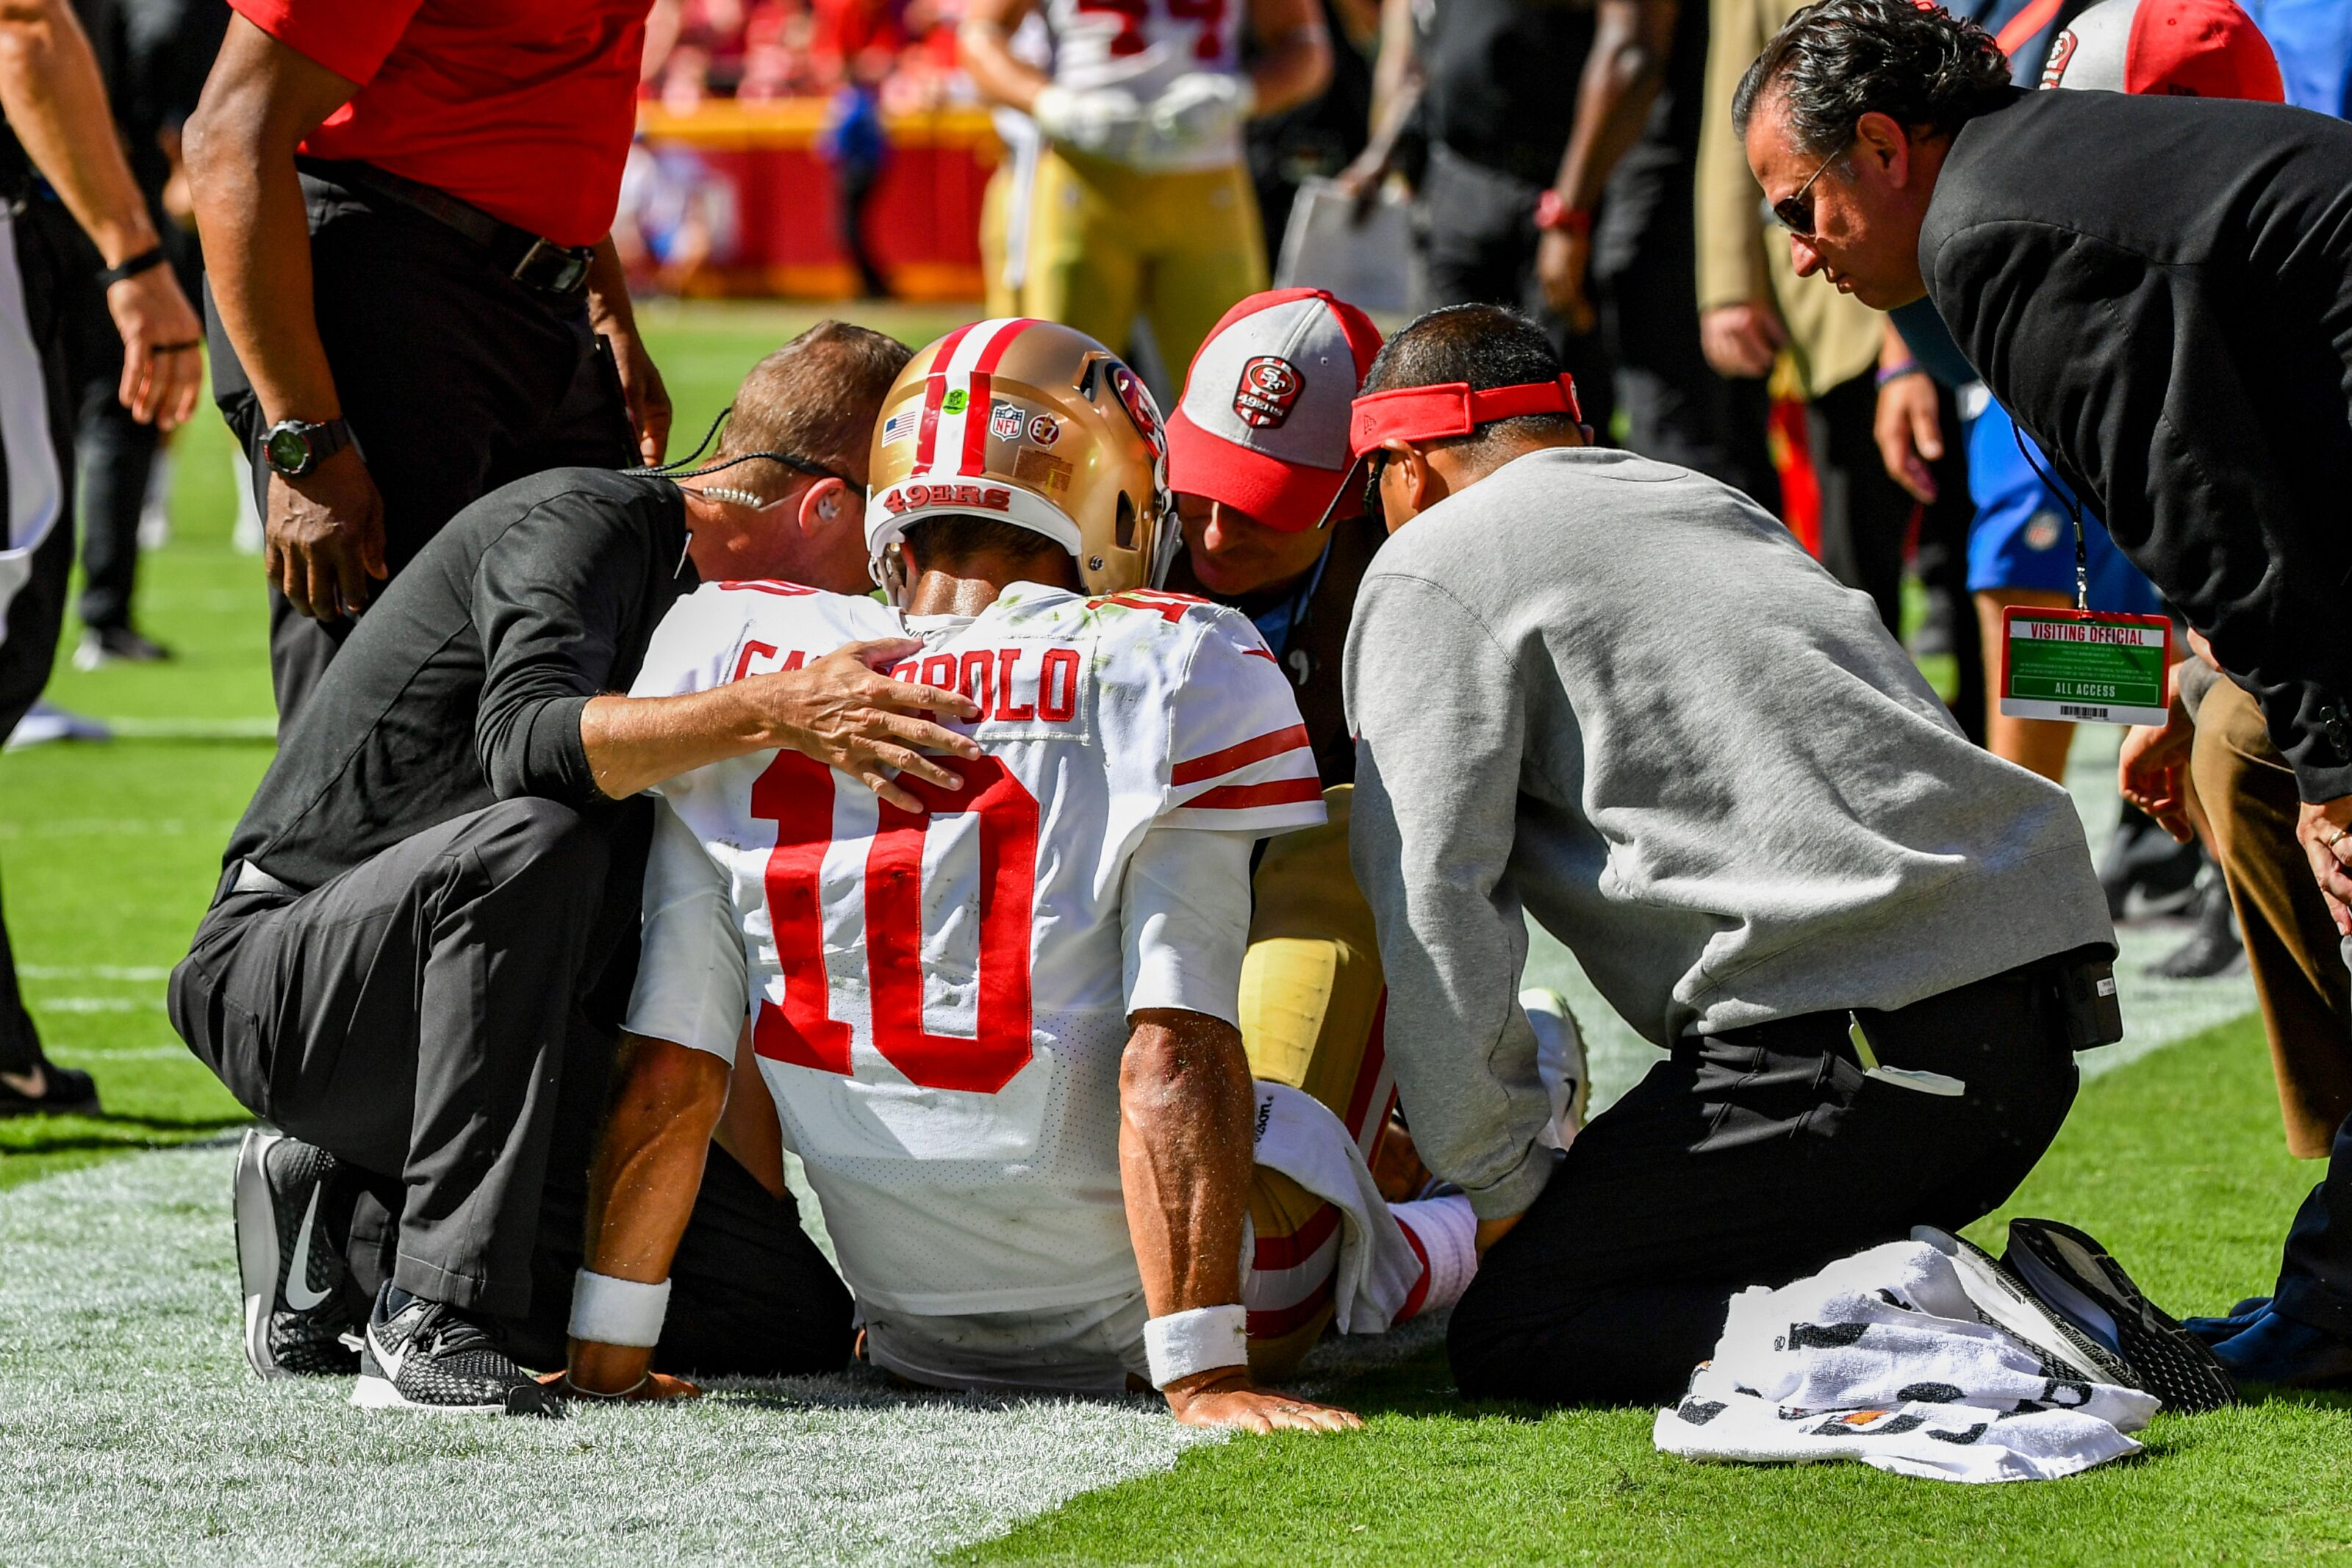 f24aeba1cac Could the San Francisco 49ers pull off a draft-day stunner and take a QB